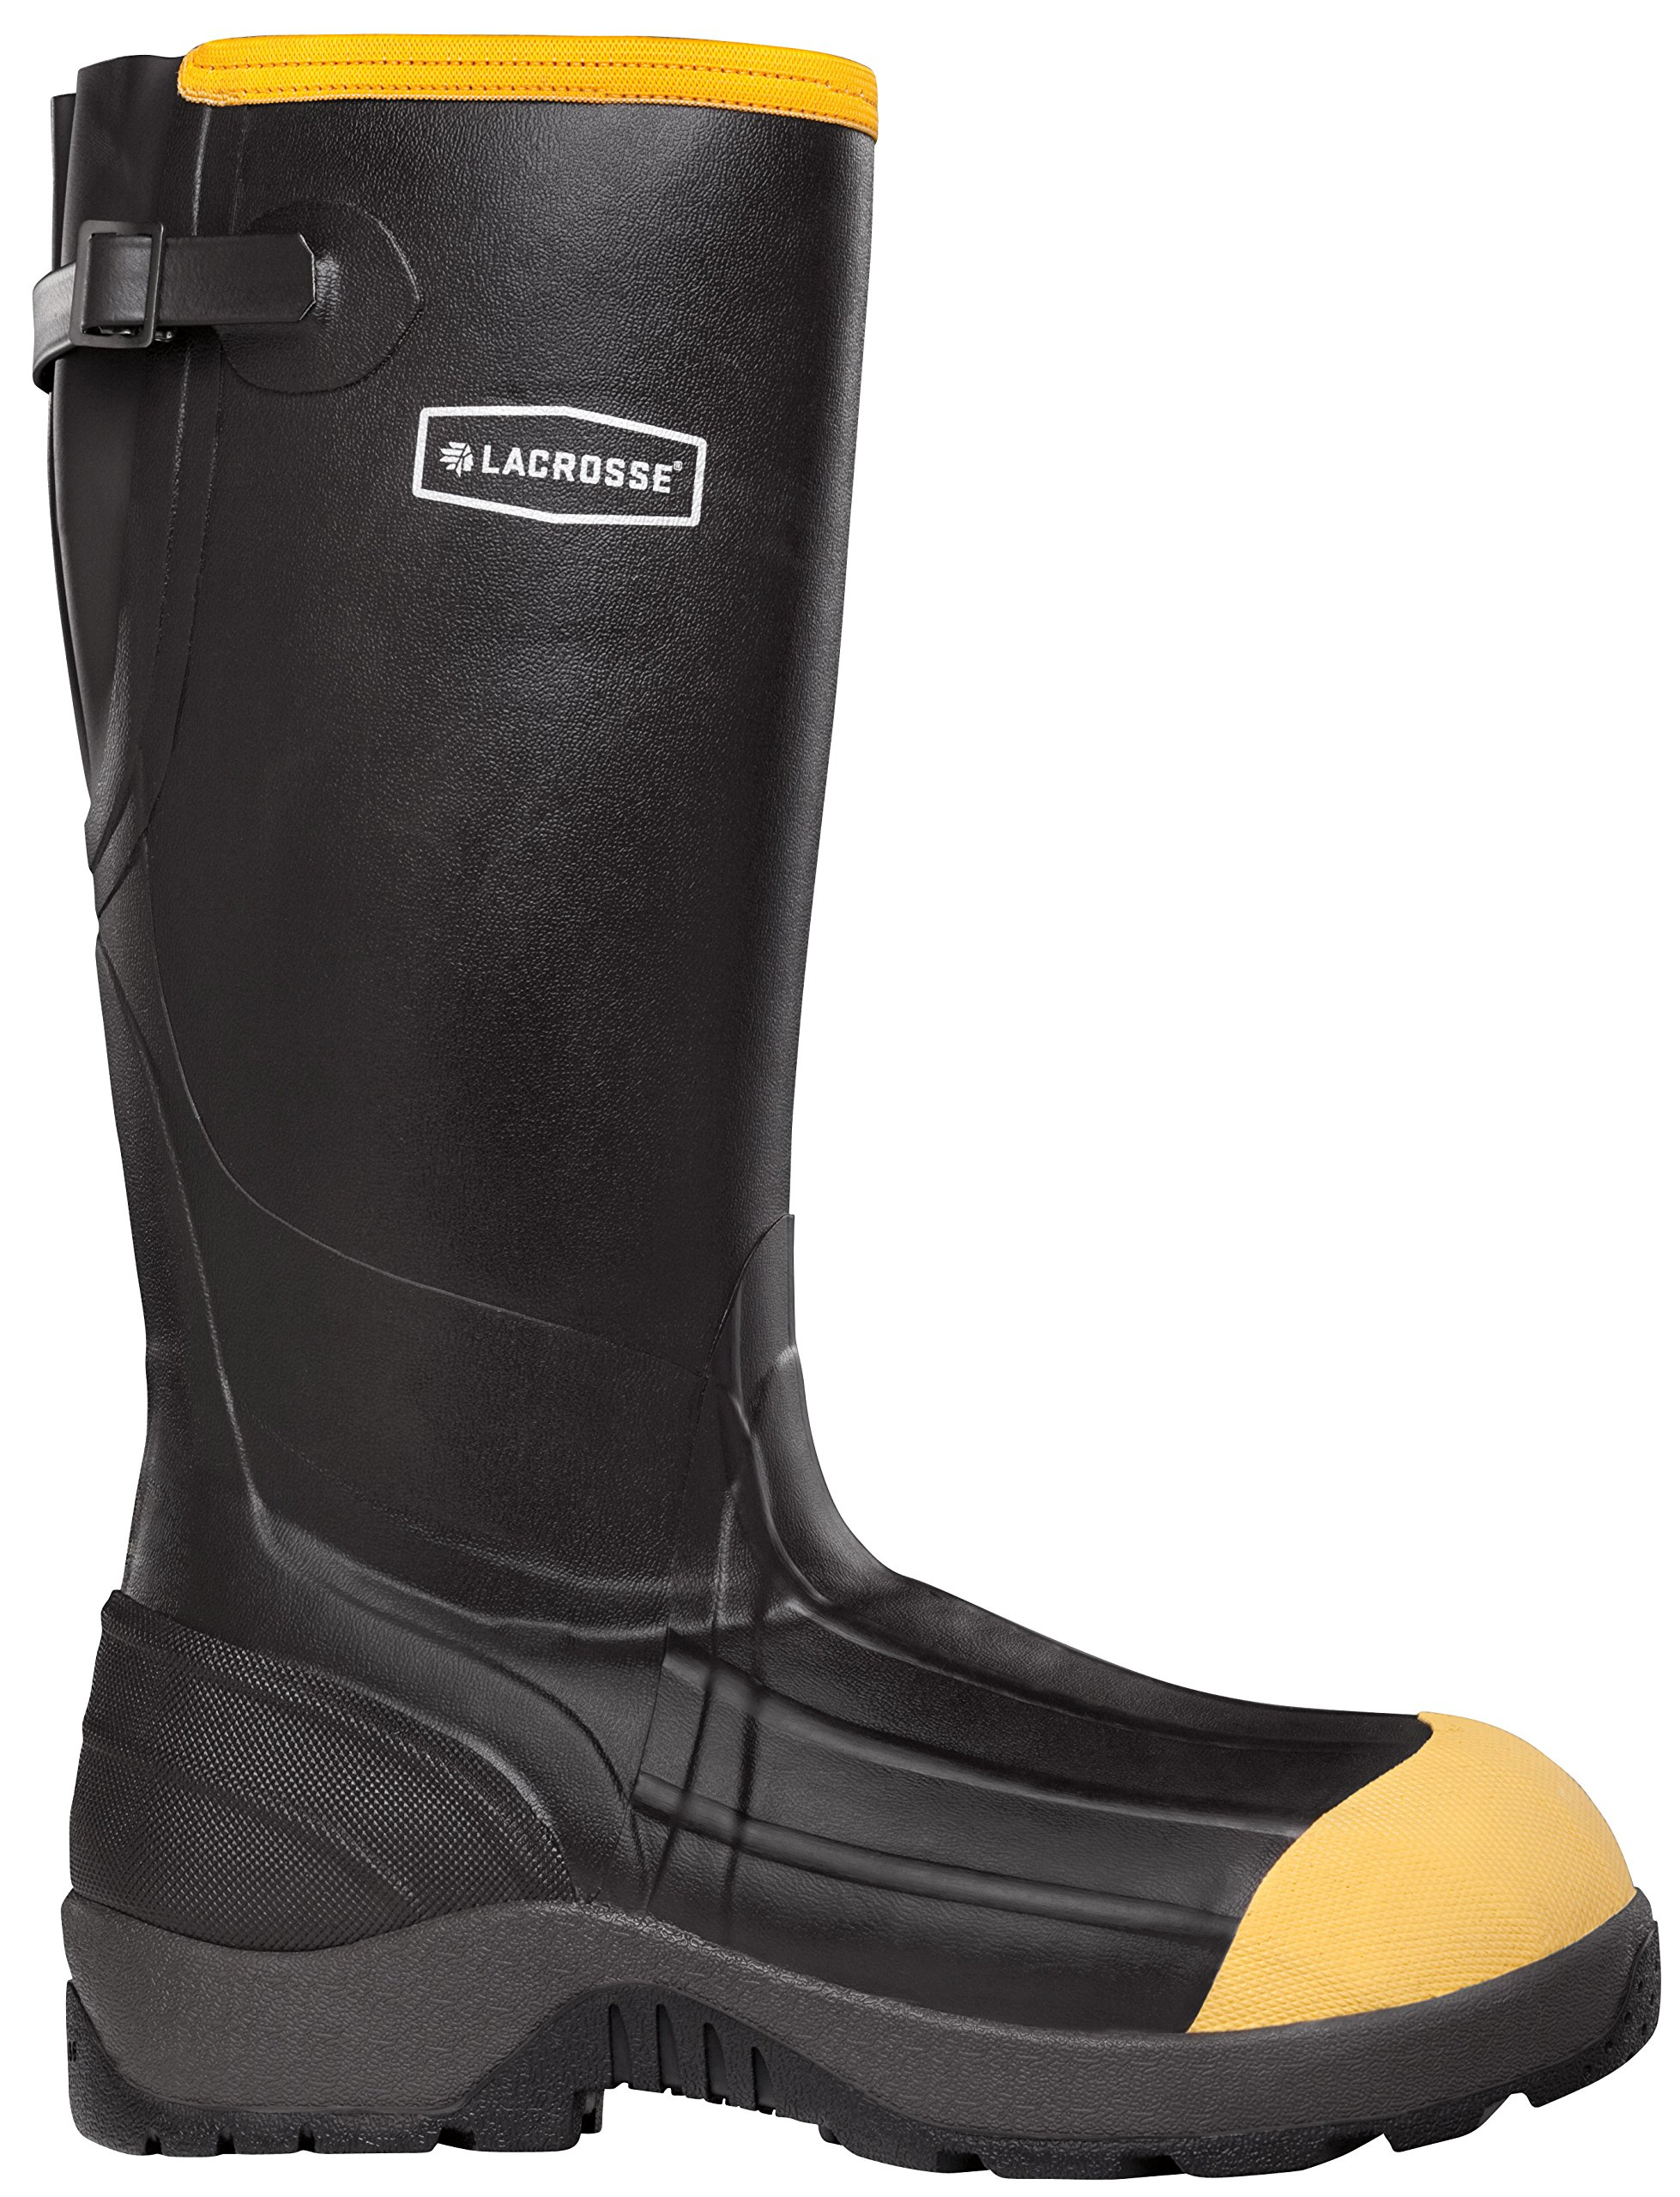 LaCrosse Men's 16'' Insulated Alpha Aggressive 800G NMT Boot,Black,US 9 M